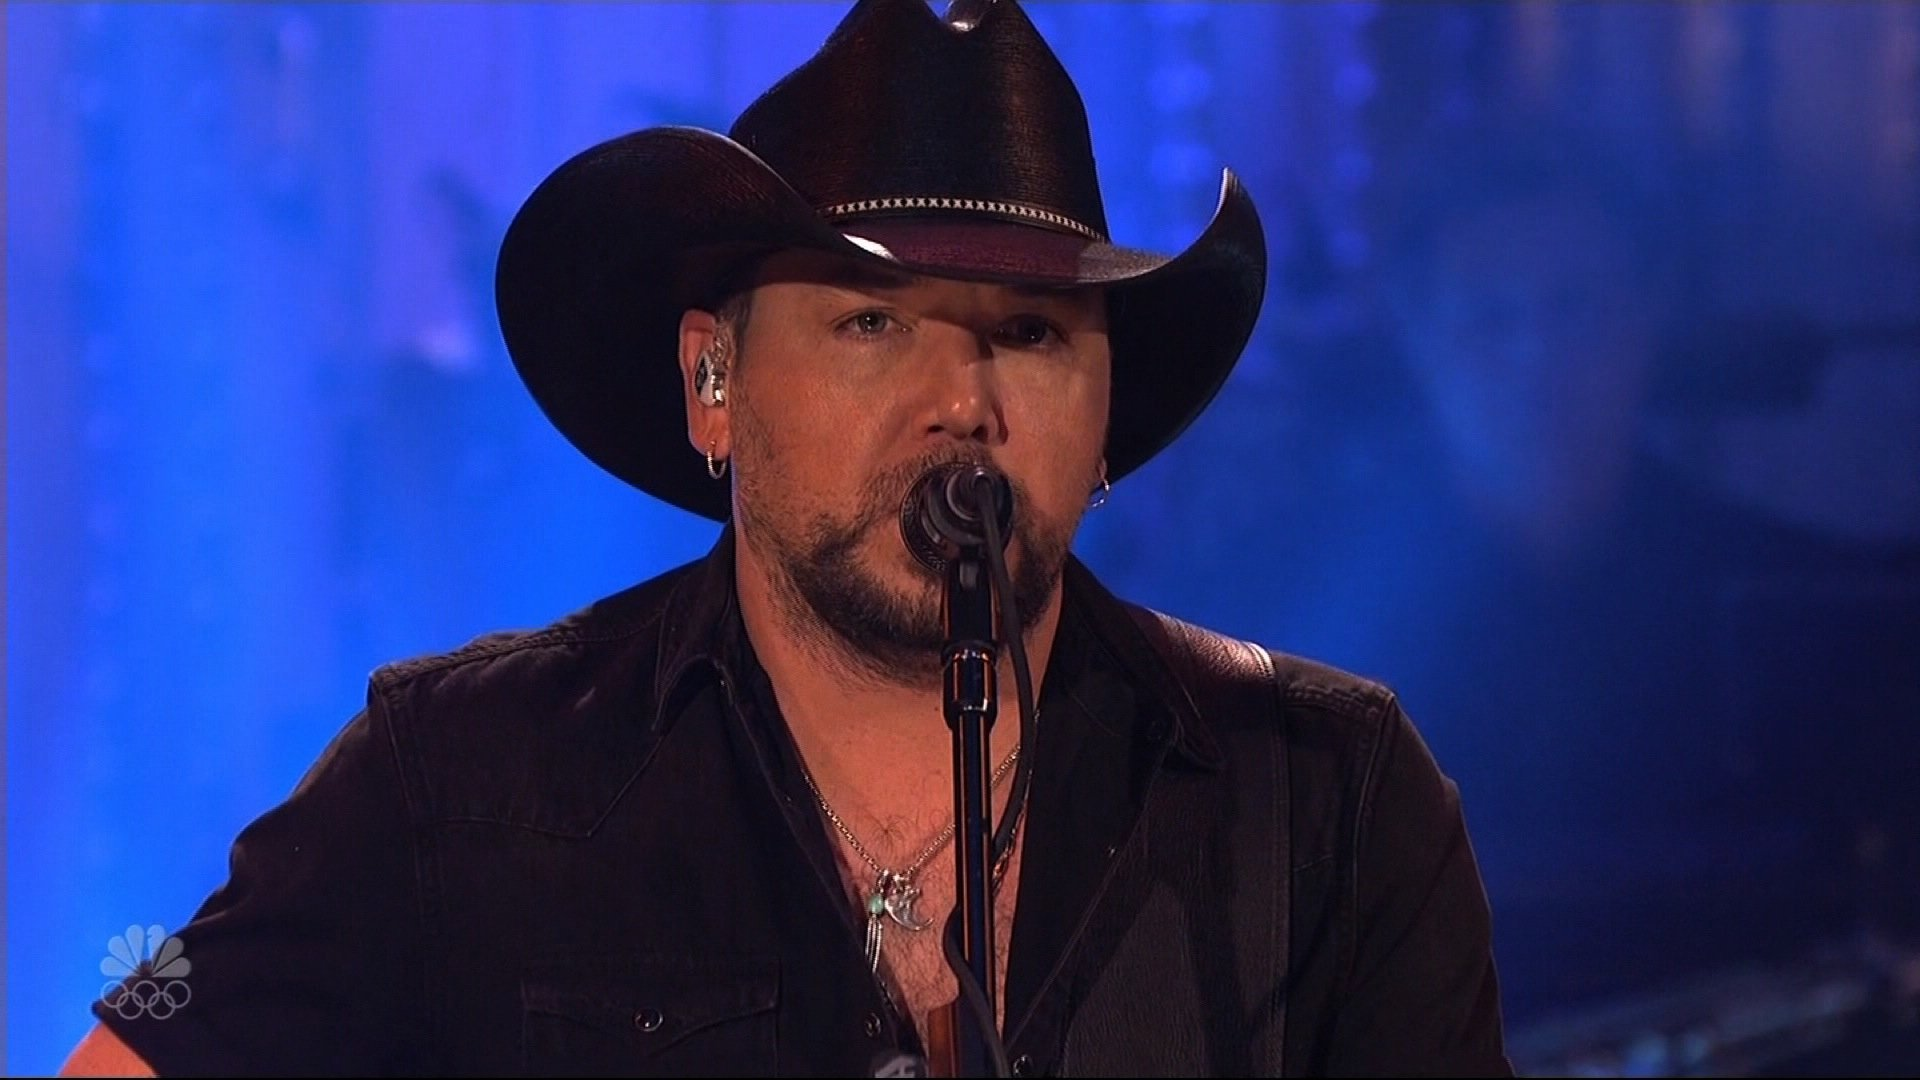 """Jason Aldean opened his set for SNL with a tribute to the victims of the mass shooting in Las Vegas. He then performed Tom Petty's """"I Won't Back Down"""" to honor the singer who died Oct. 2, 2017. (Credit: NBC via CNN)"""